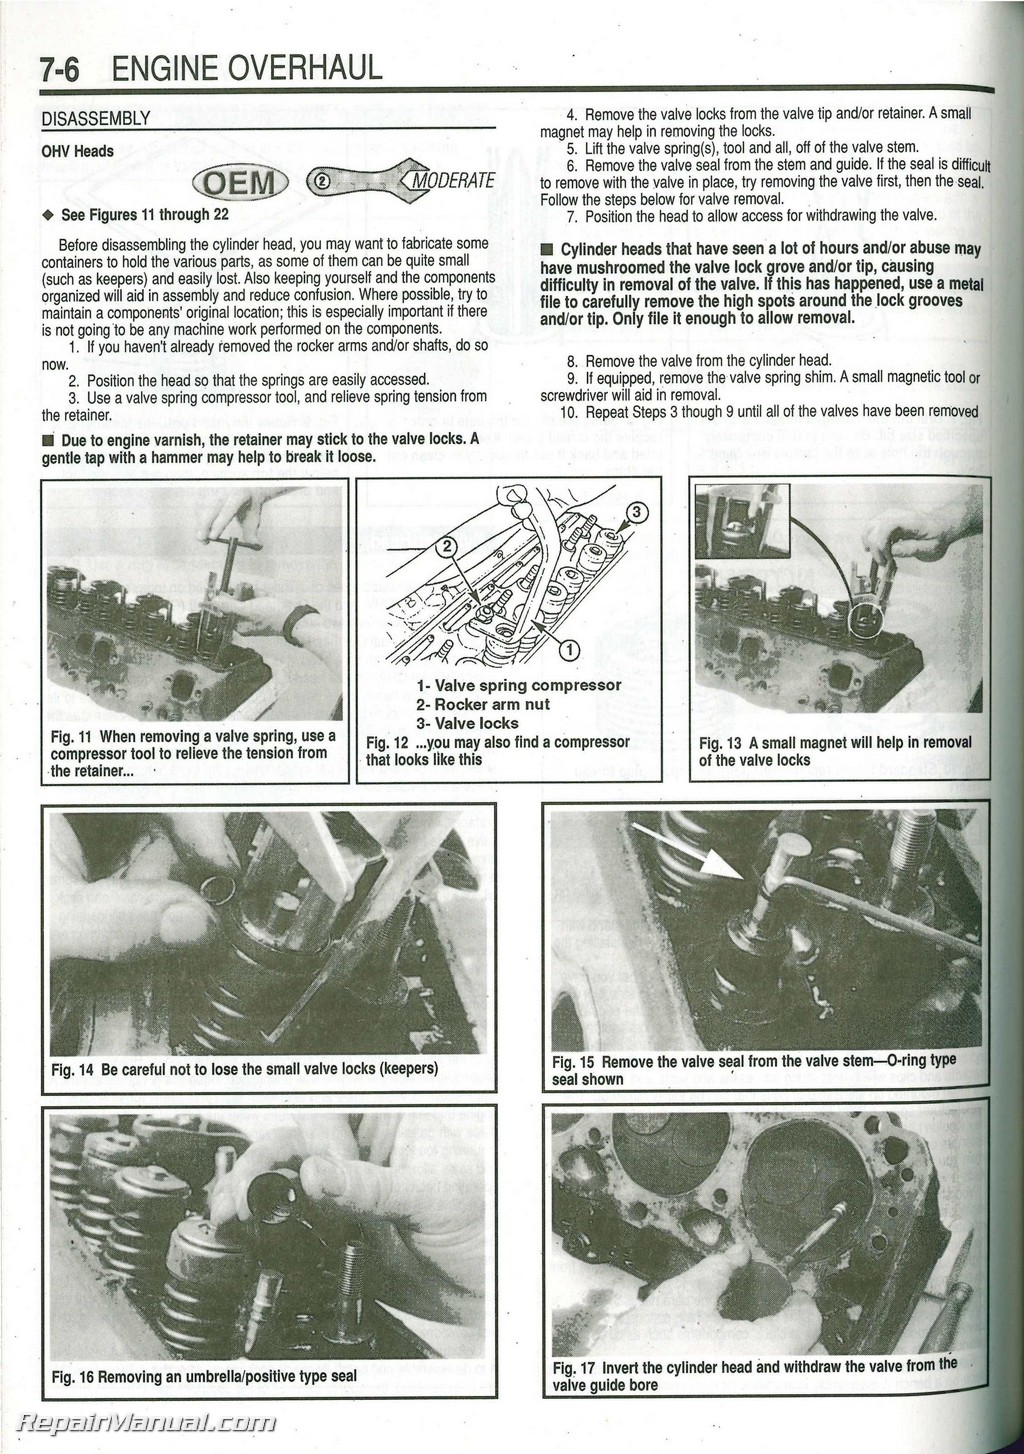 Omc Snowmobile Wiring Diagram Will Be A Thing Evinrude Johnson New Instrument Tach Harness 174732 Cobra Stern Drive Boat Engine Repair Manual 1986 1998 Seloc Rh Repairmanual Com Gilson Snowmobiles